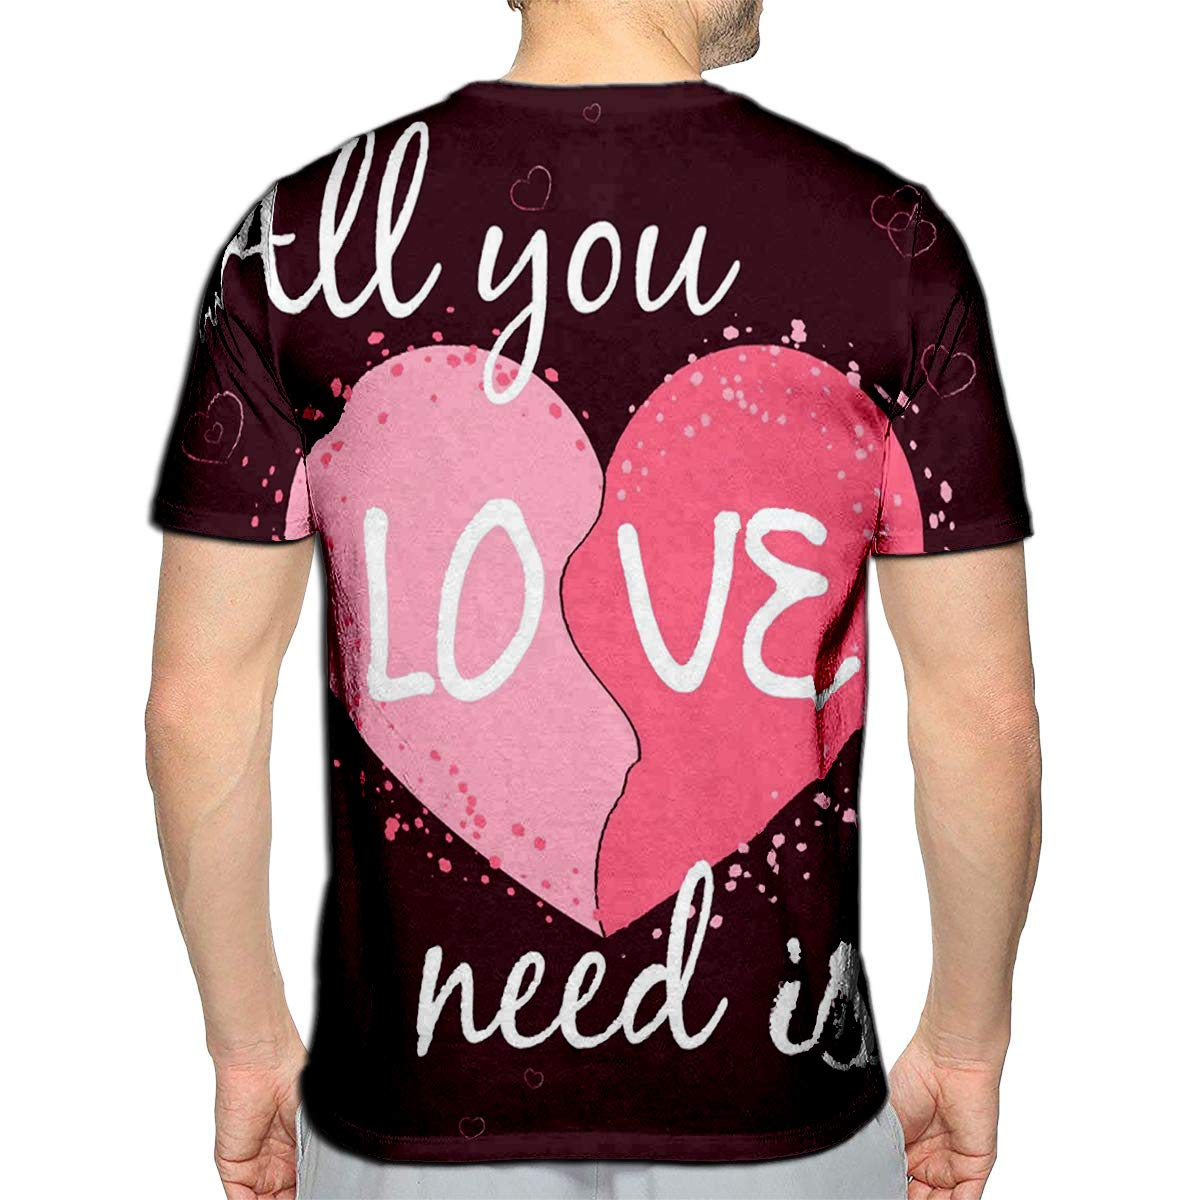 3D Printed T-Shirts Mom The Heart at Family Home Short Sleeve Tops Tees